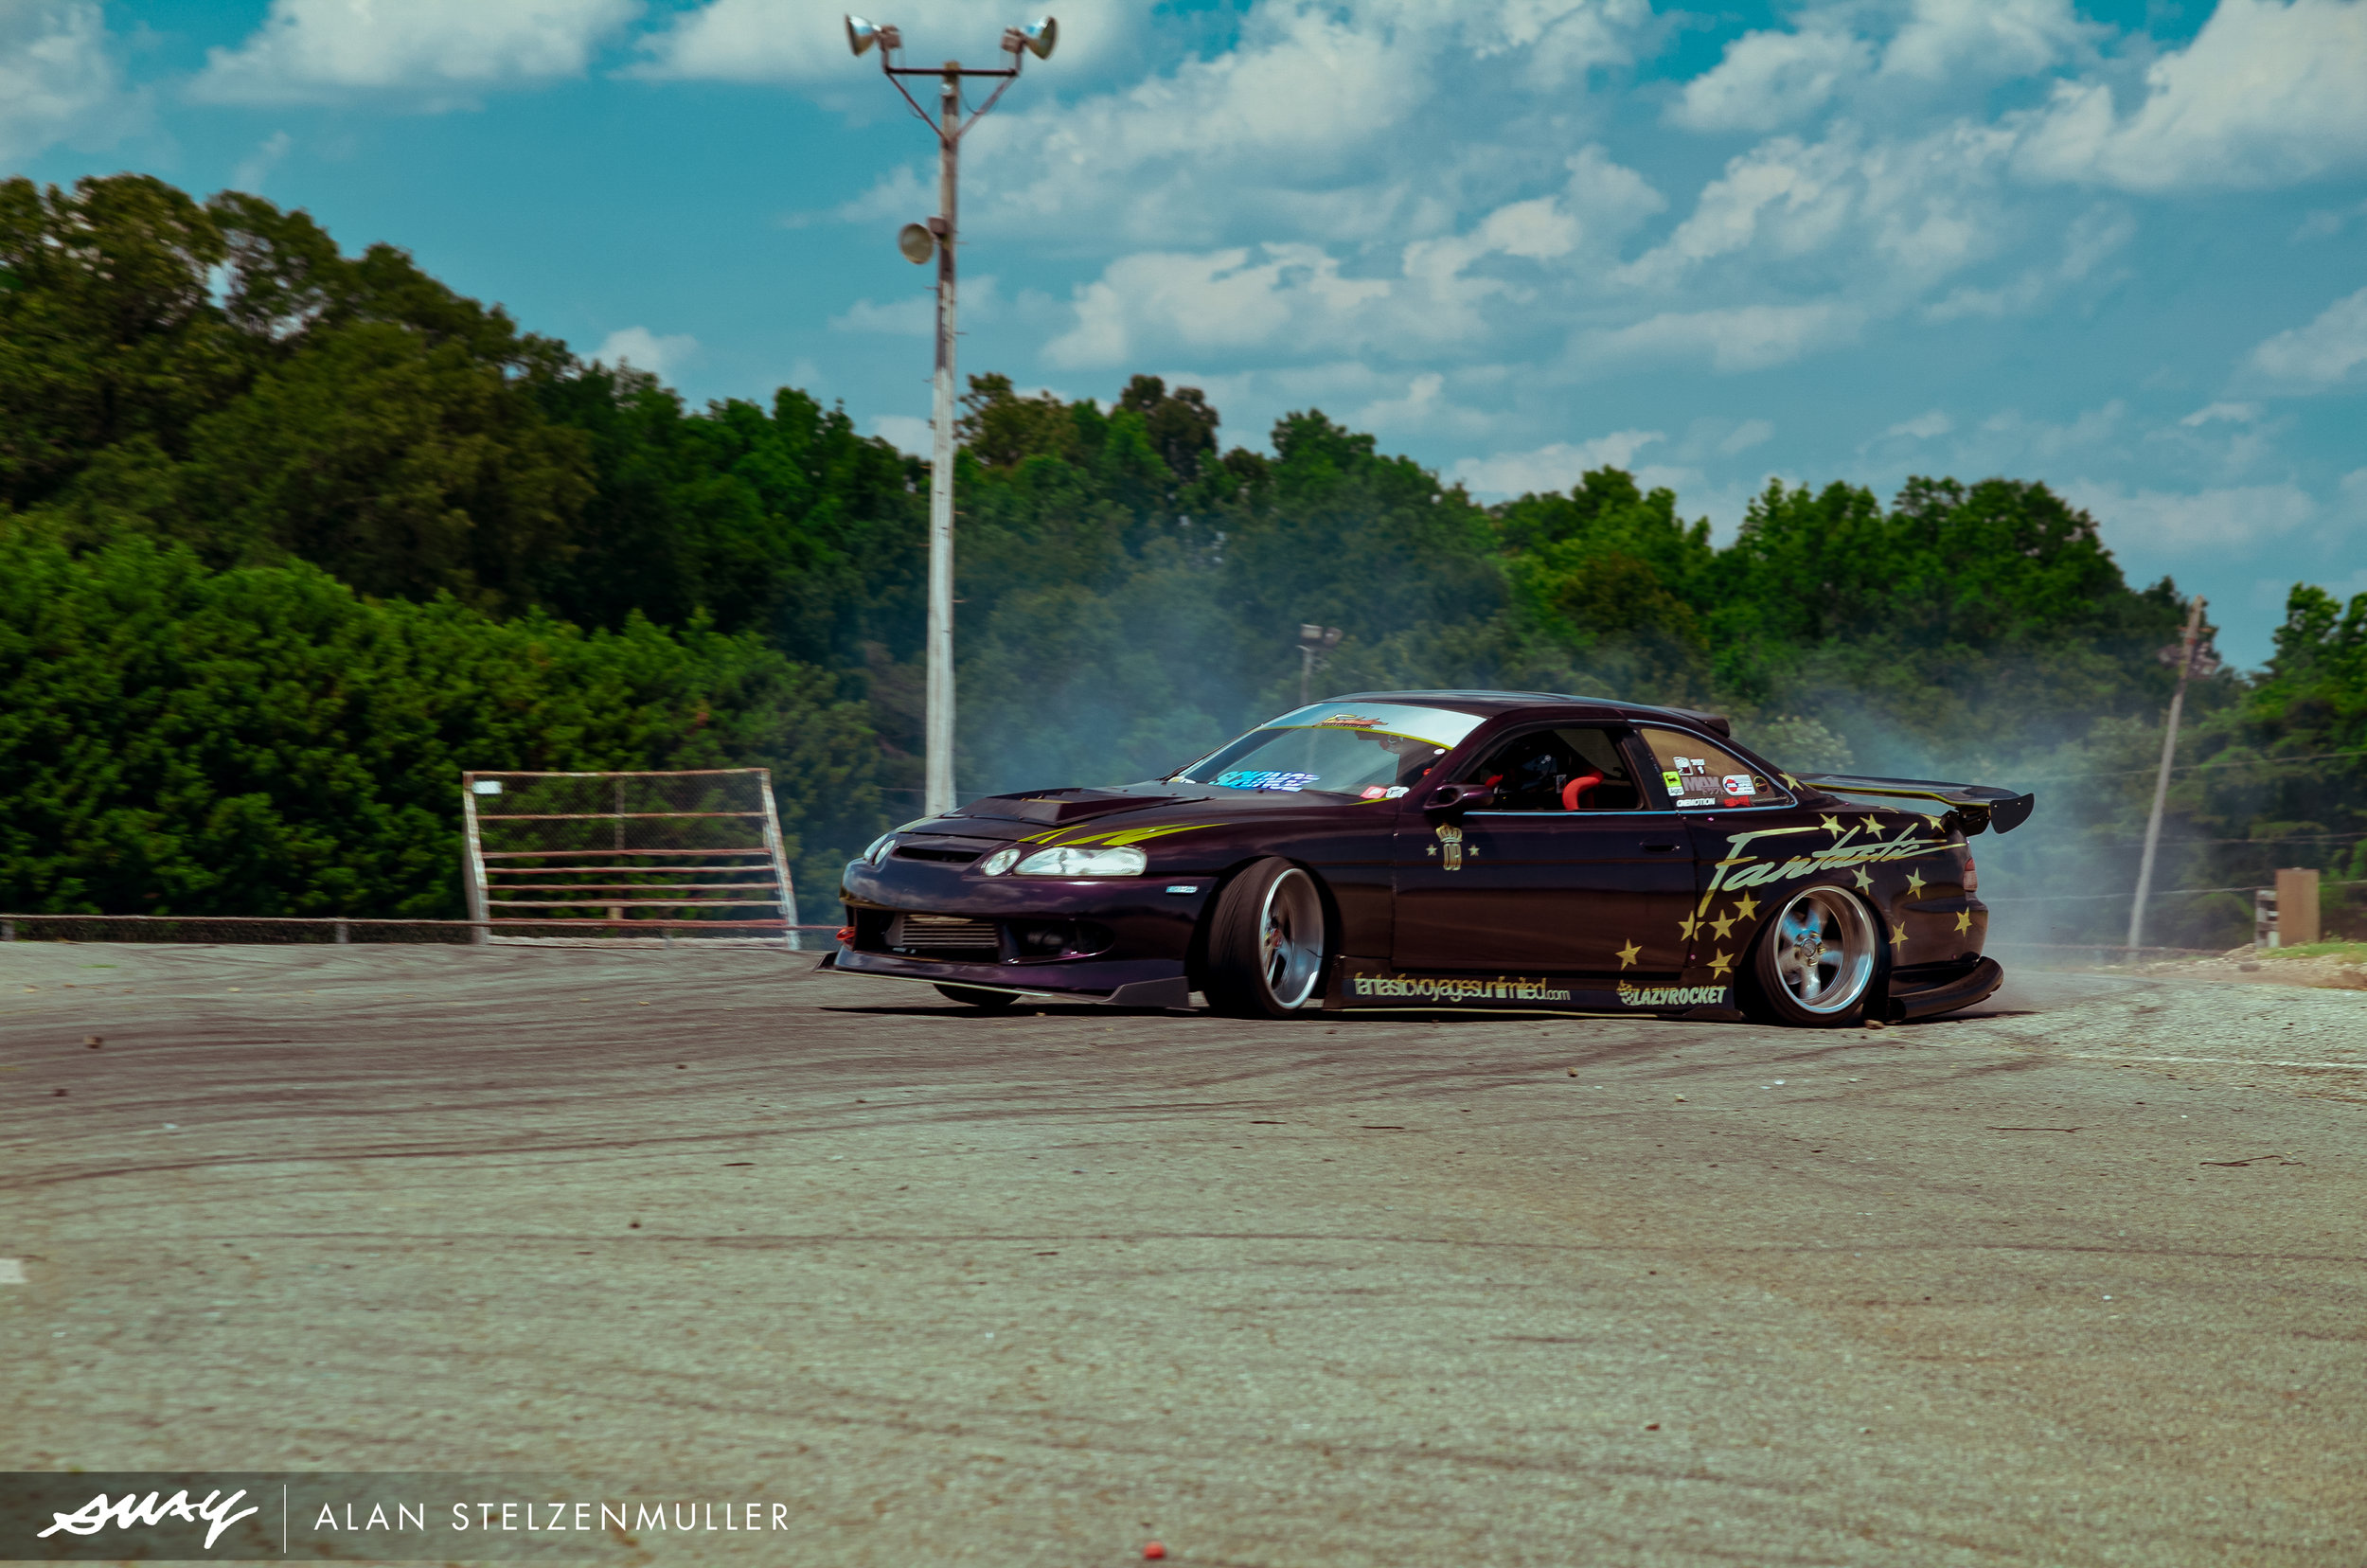 Loving the style of this Soarer